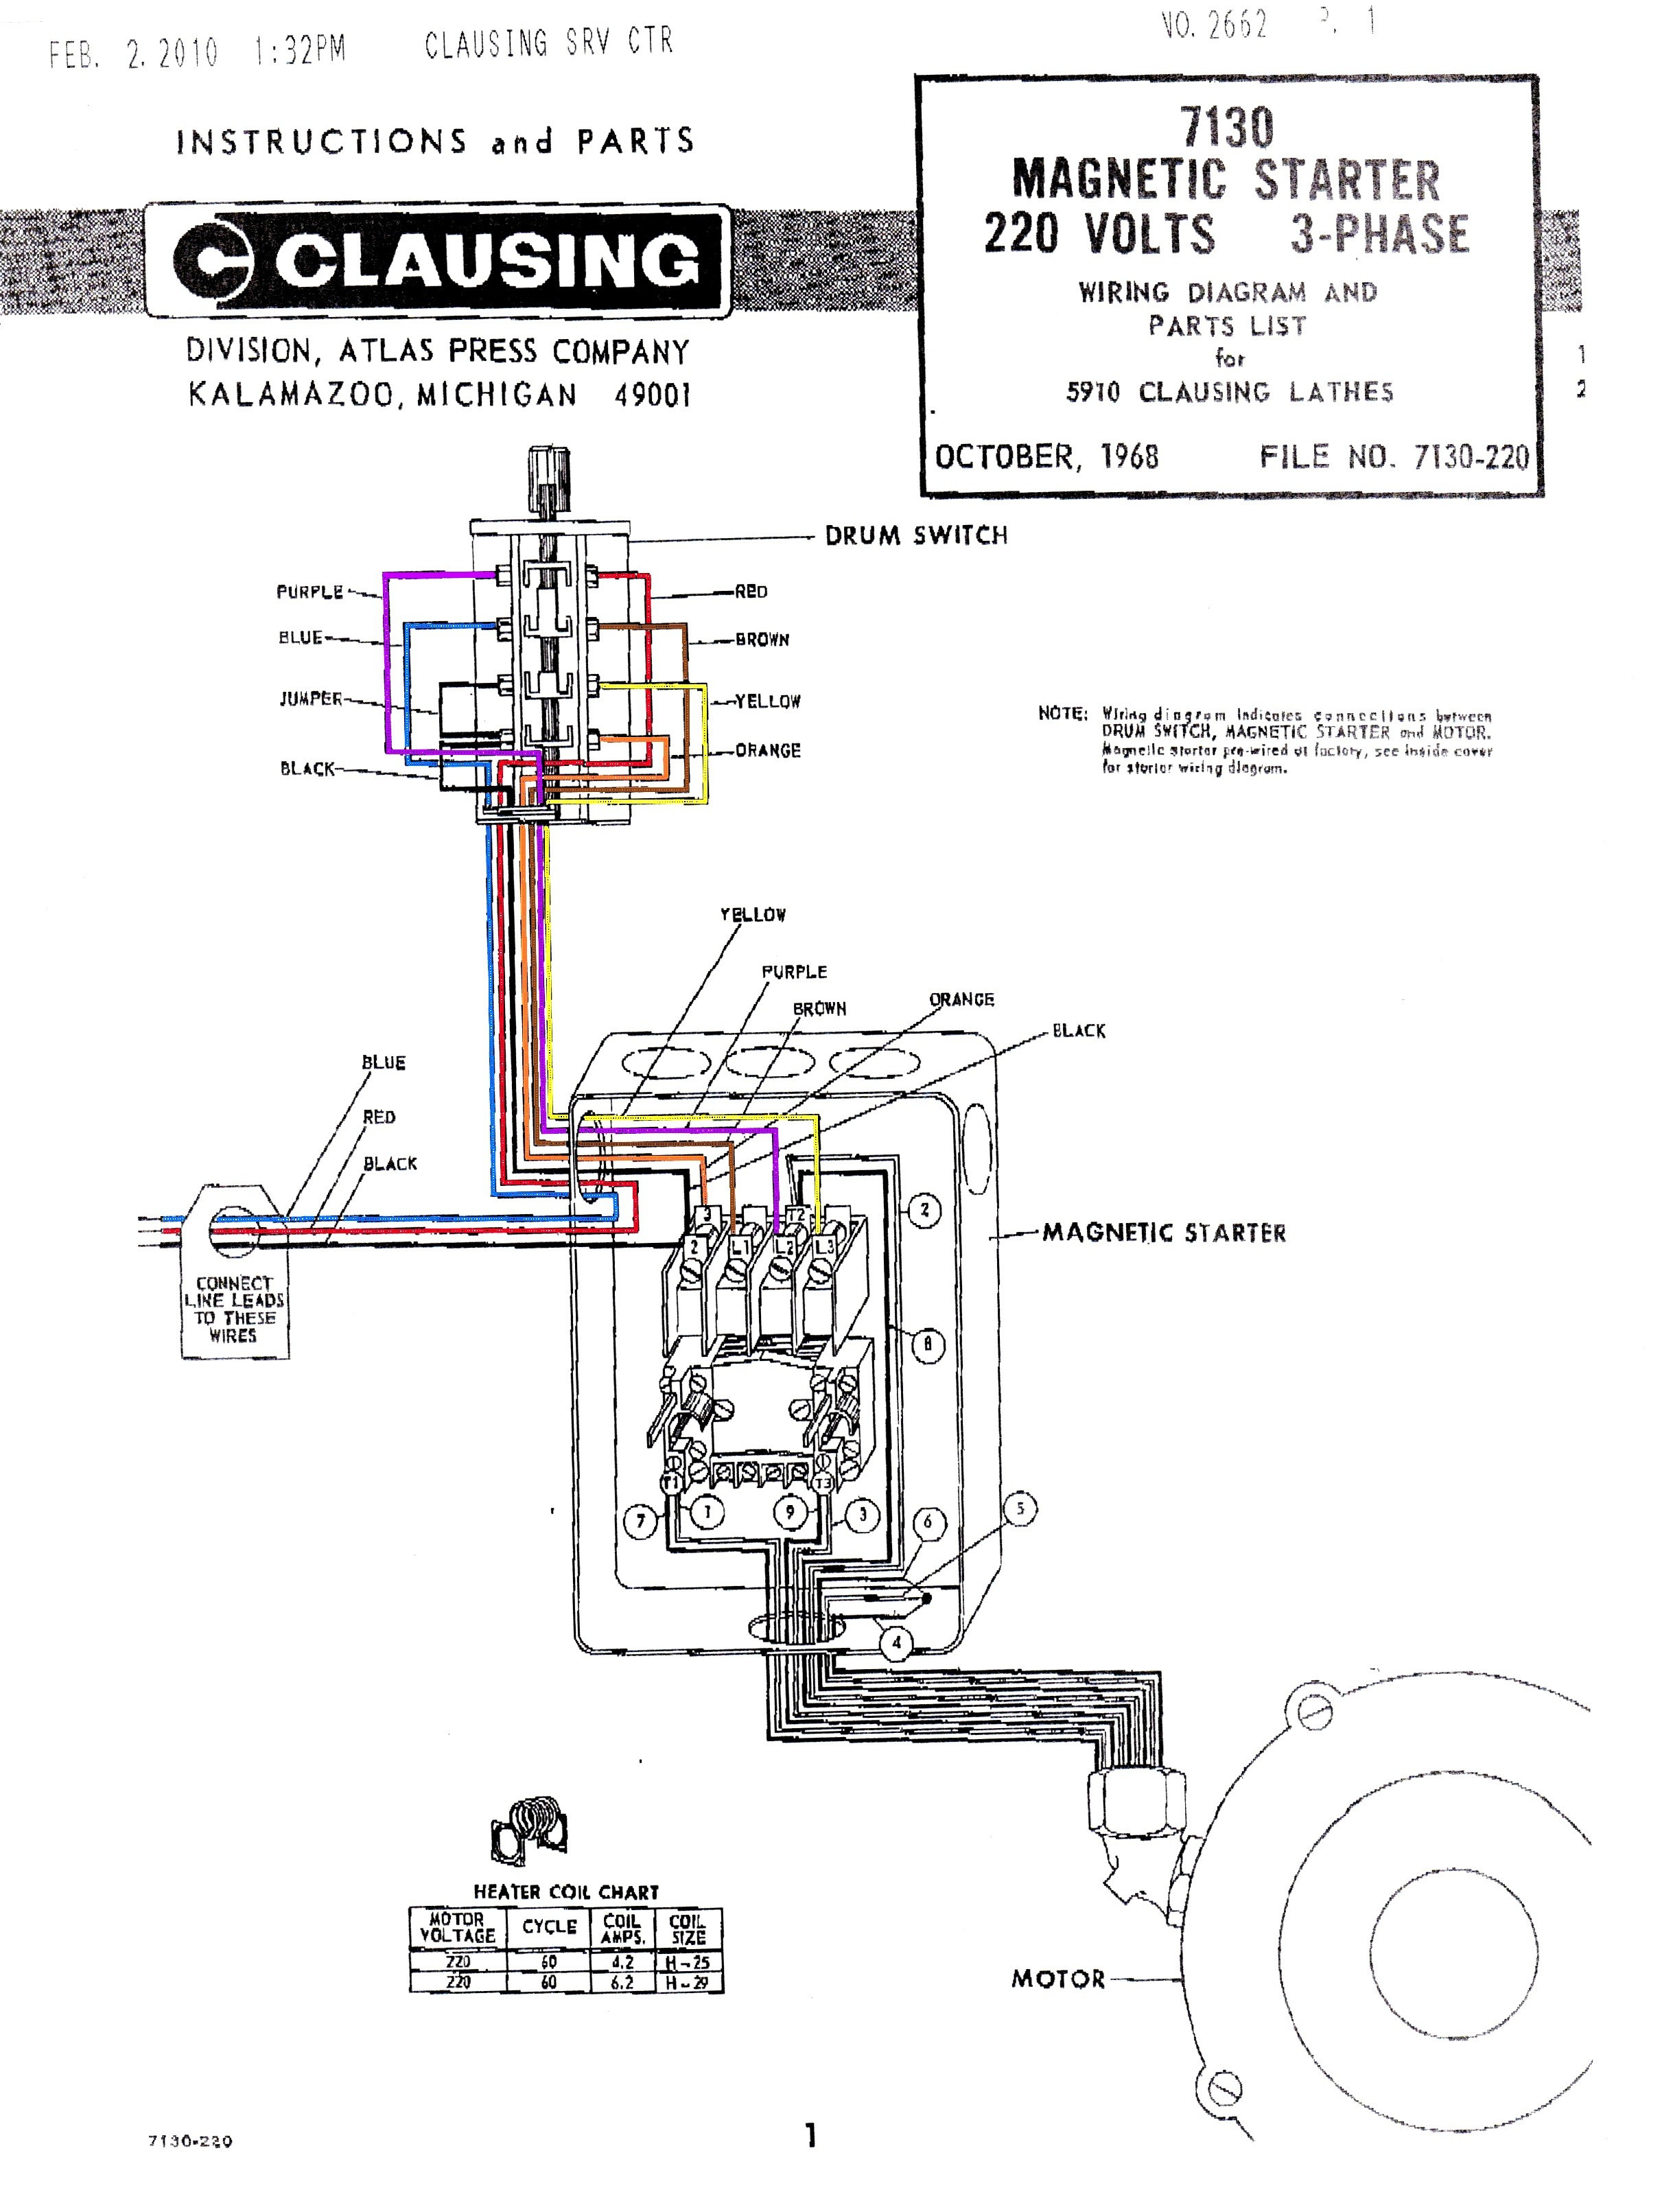 Magnetic Motor Starter Wiring Diagram Wiring Diagram Database